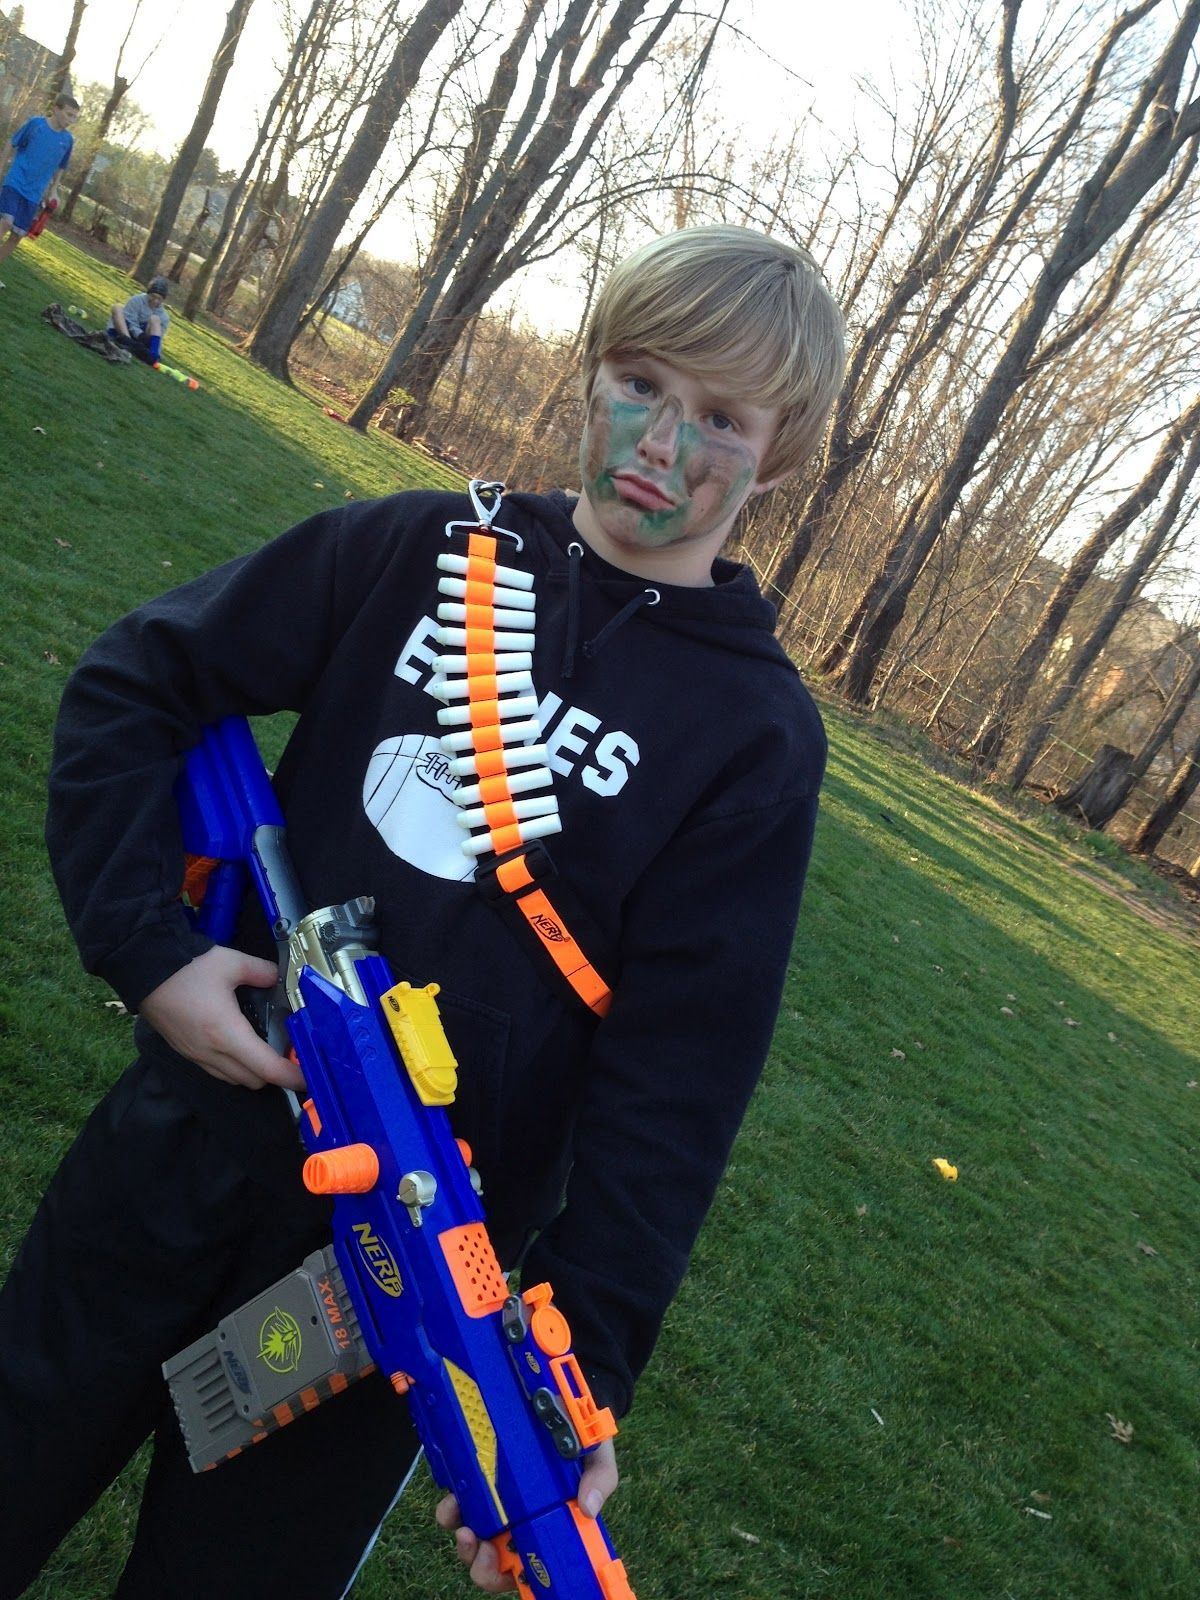 merry me events: Glow-in-the-dark Nerf Battle Birthday Party